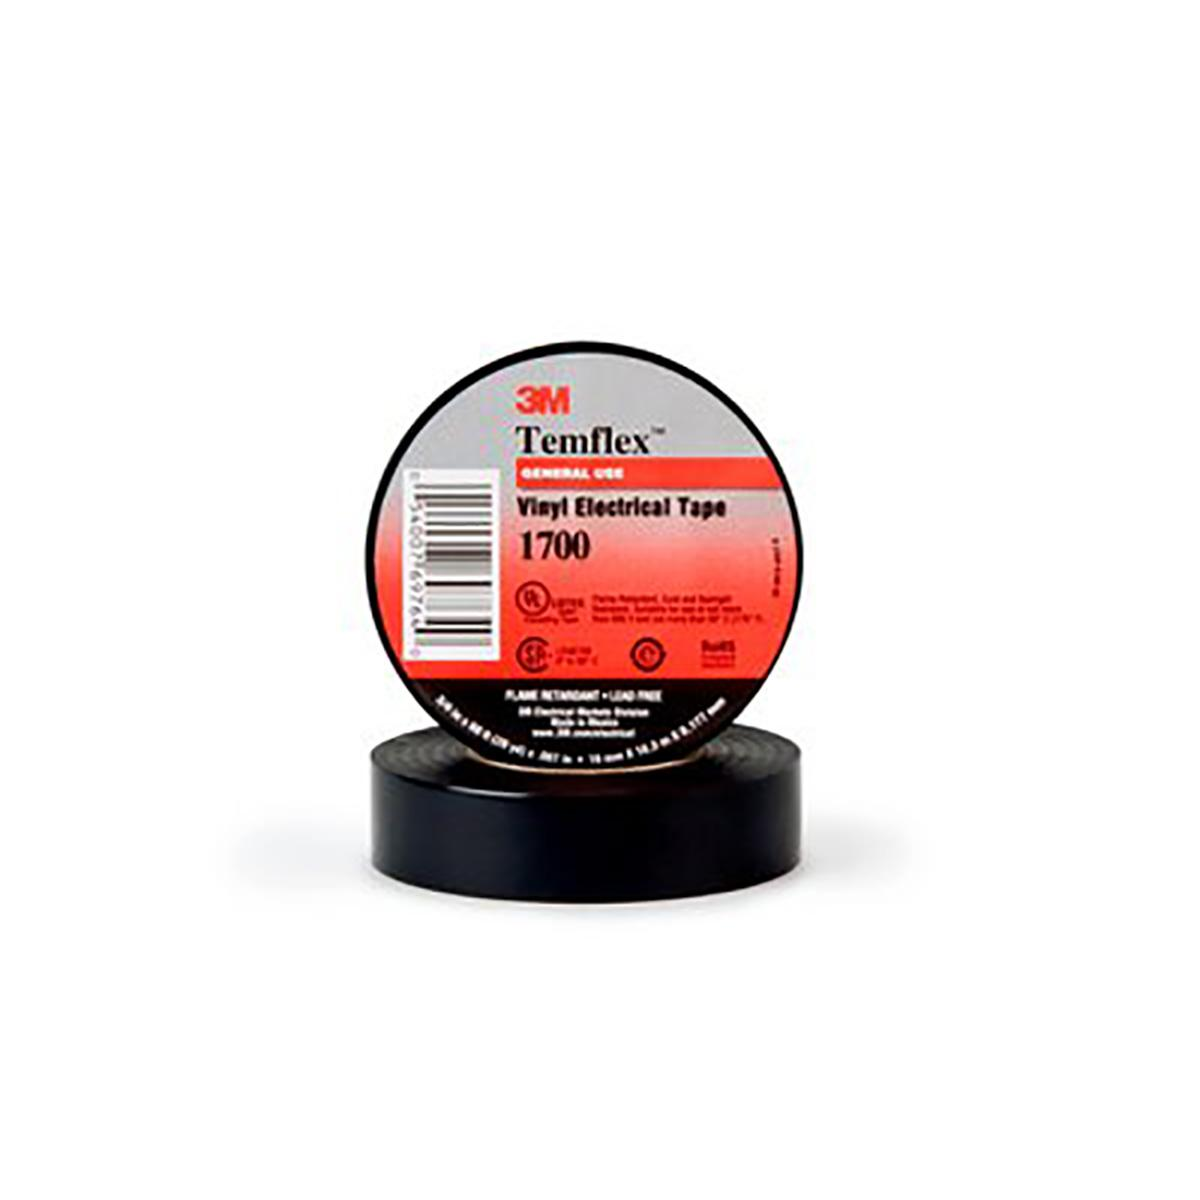 3M(TM) Temflex(TM) General Use Vinyl Electrical Tape 1700-3/4x60FT, 3/4 in x 60FT